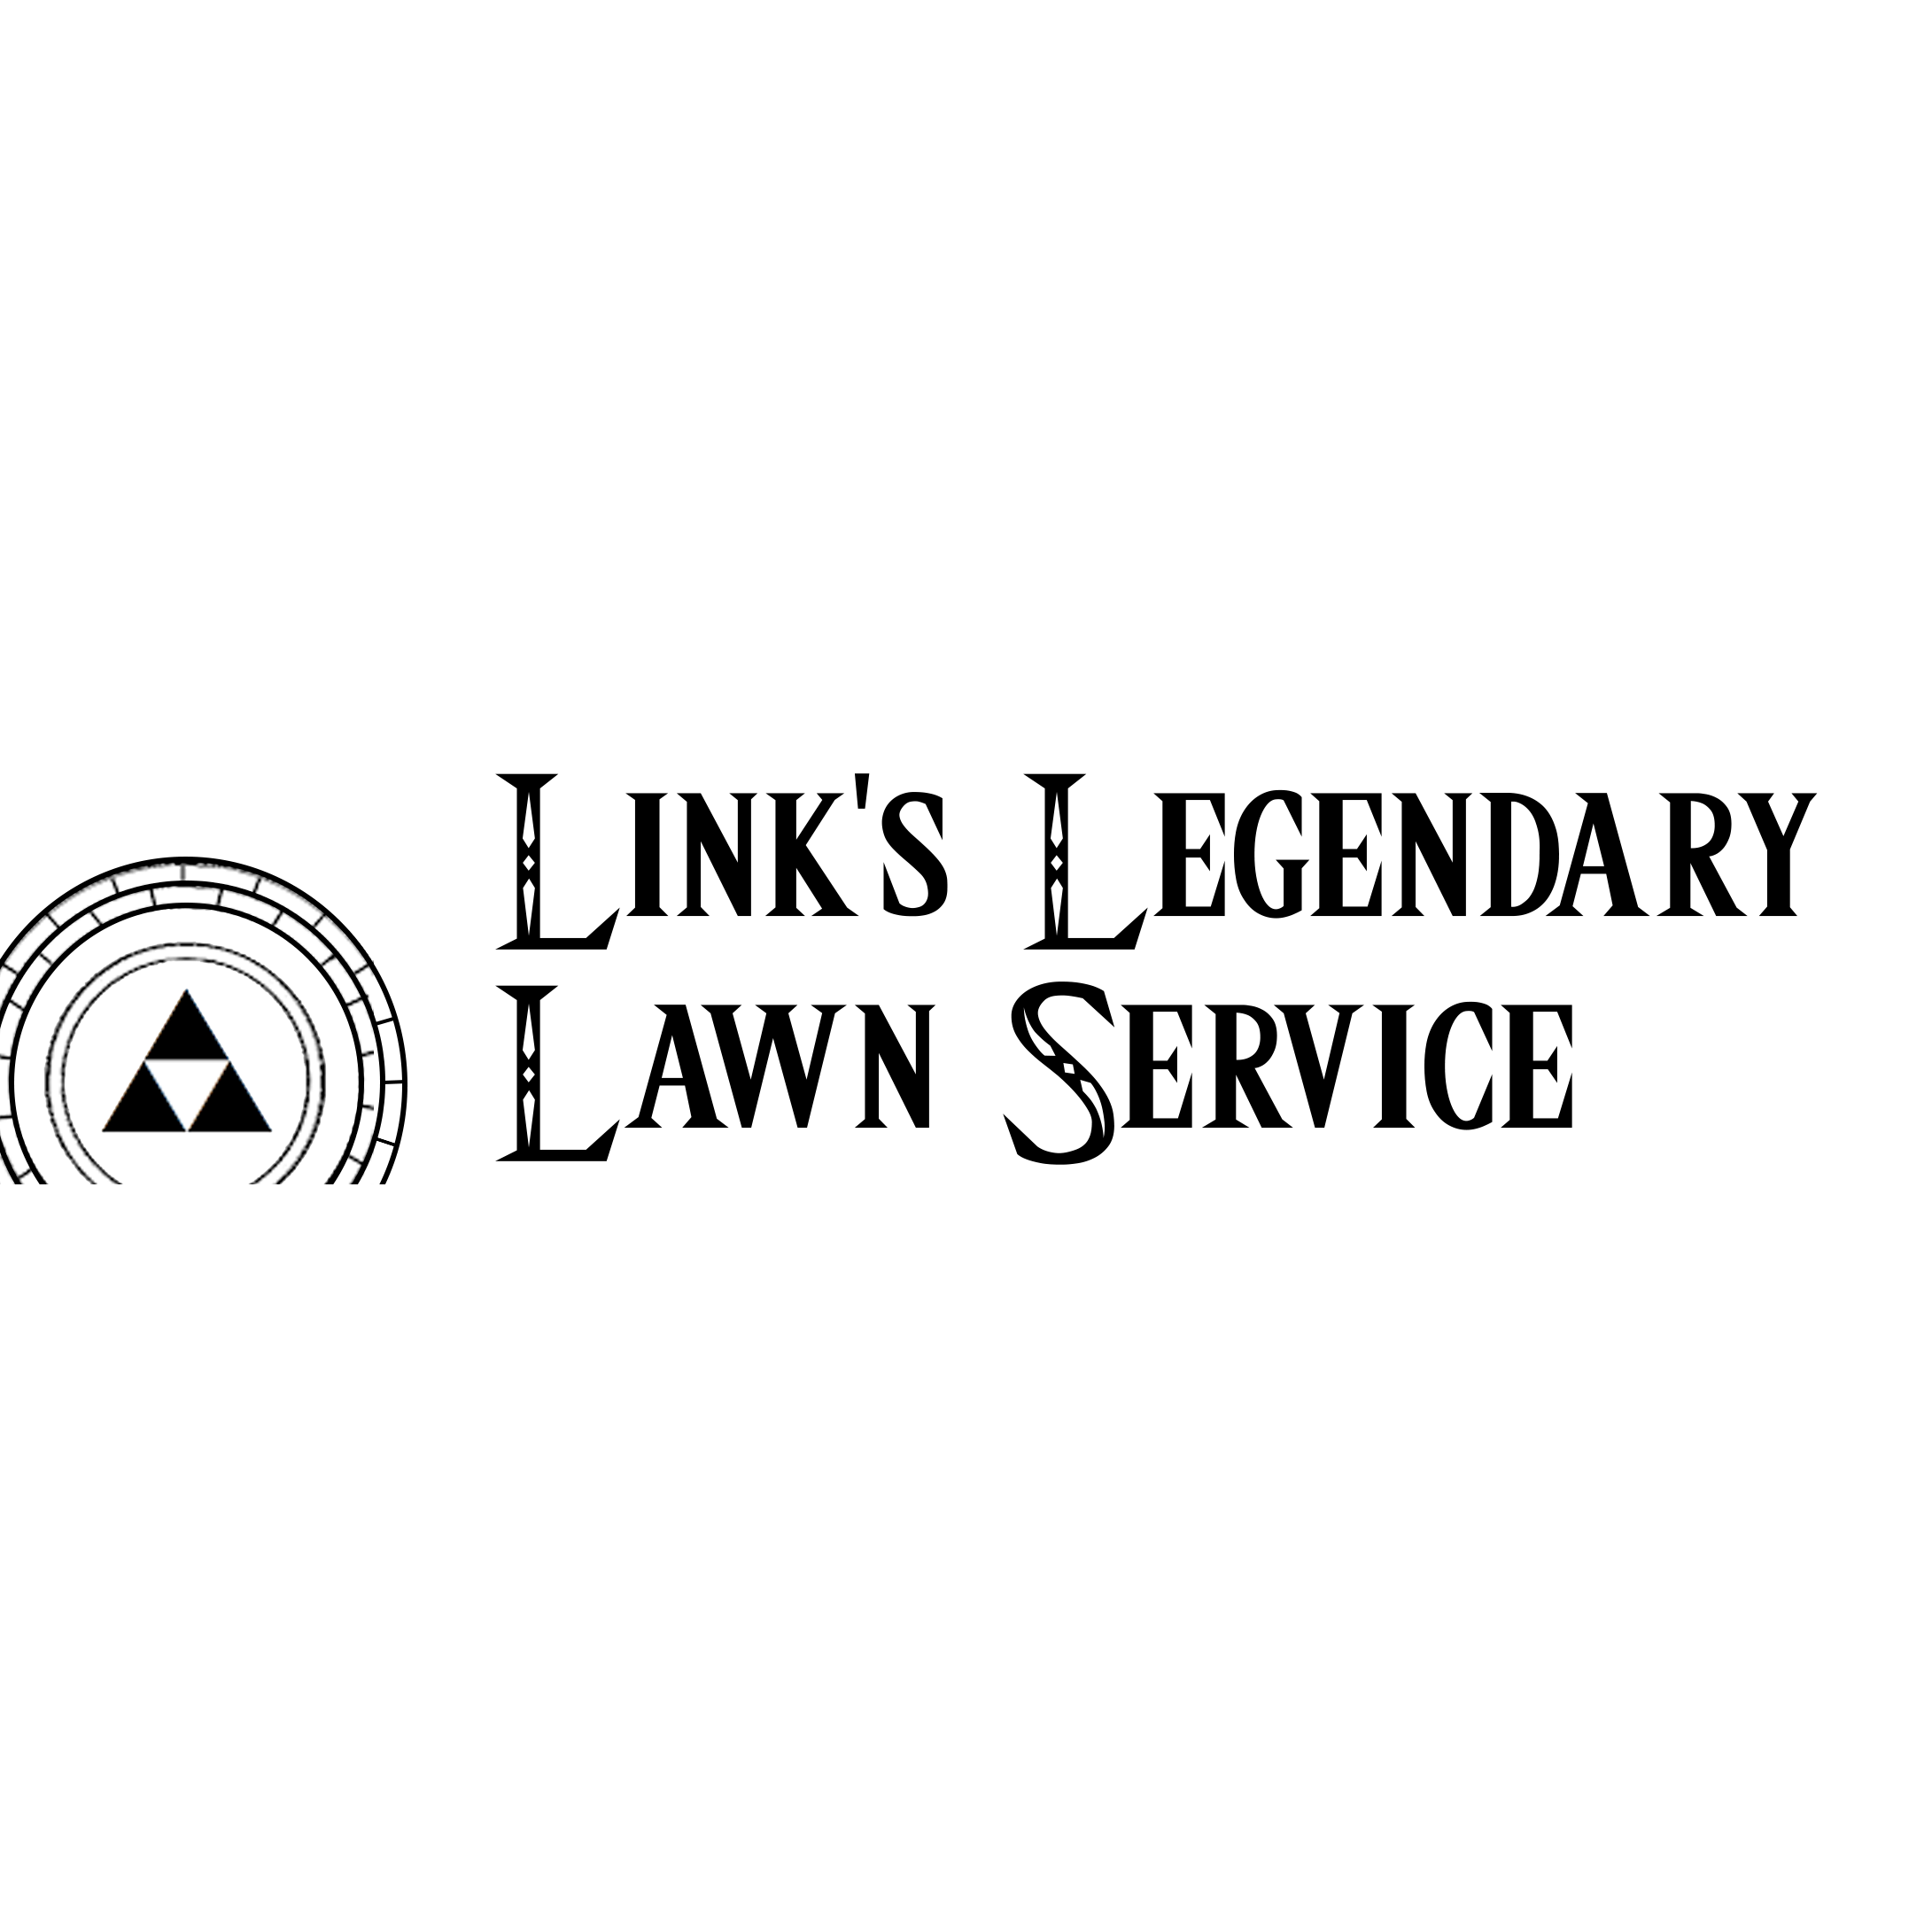 Links Legendary Lawn Service - Billings, MT 59105 - (406)698-8209 | ShowMeLocal.com